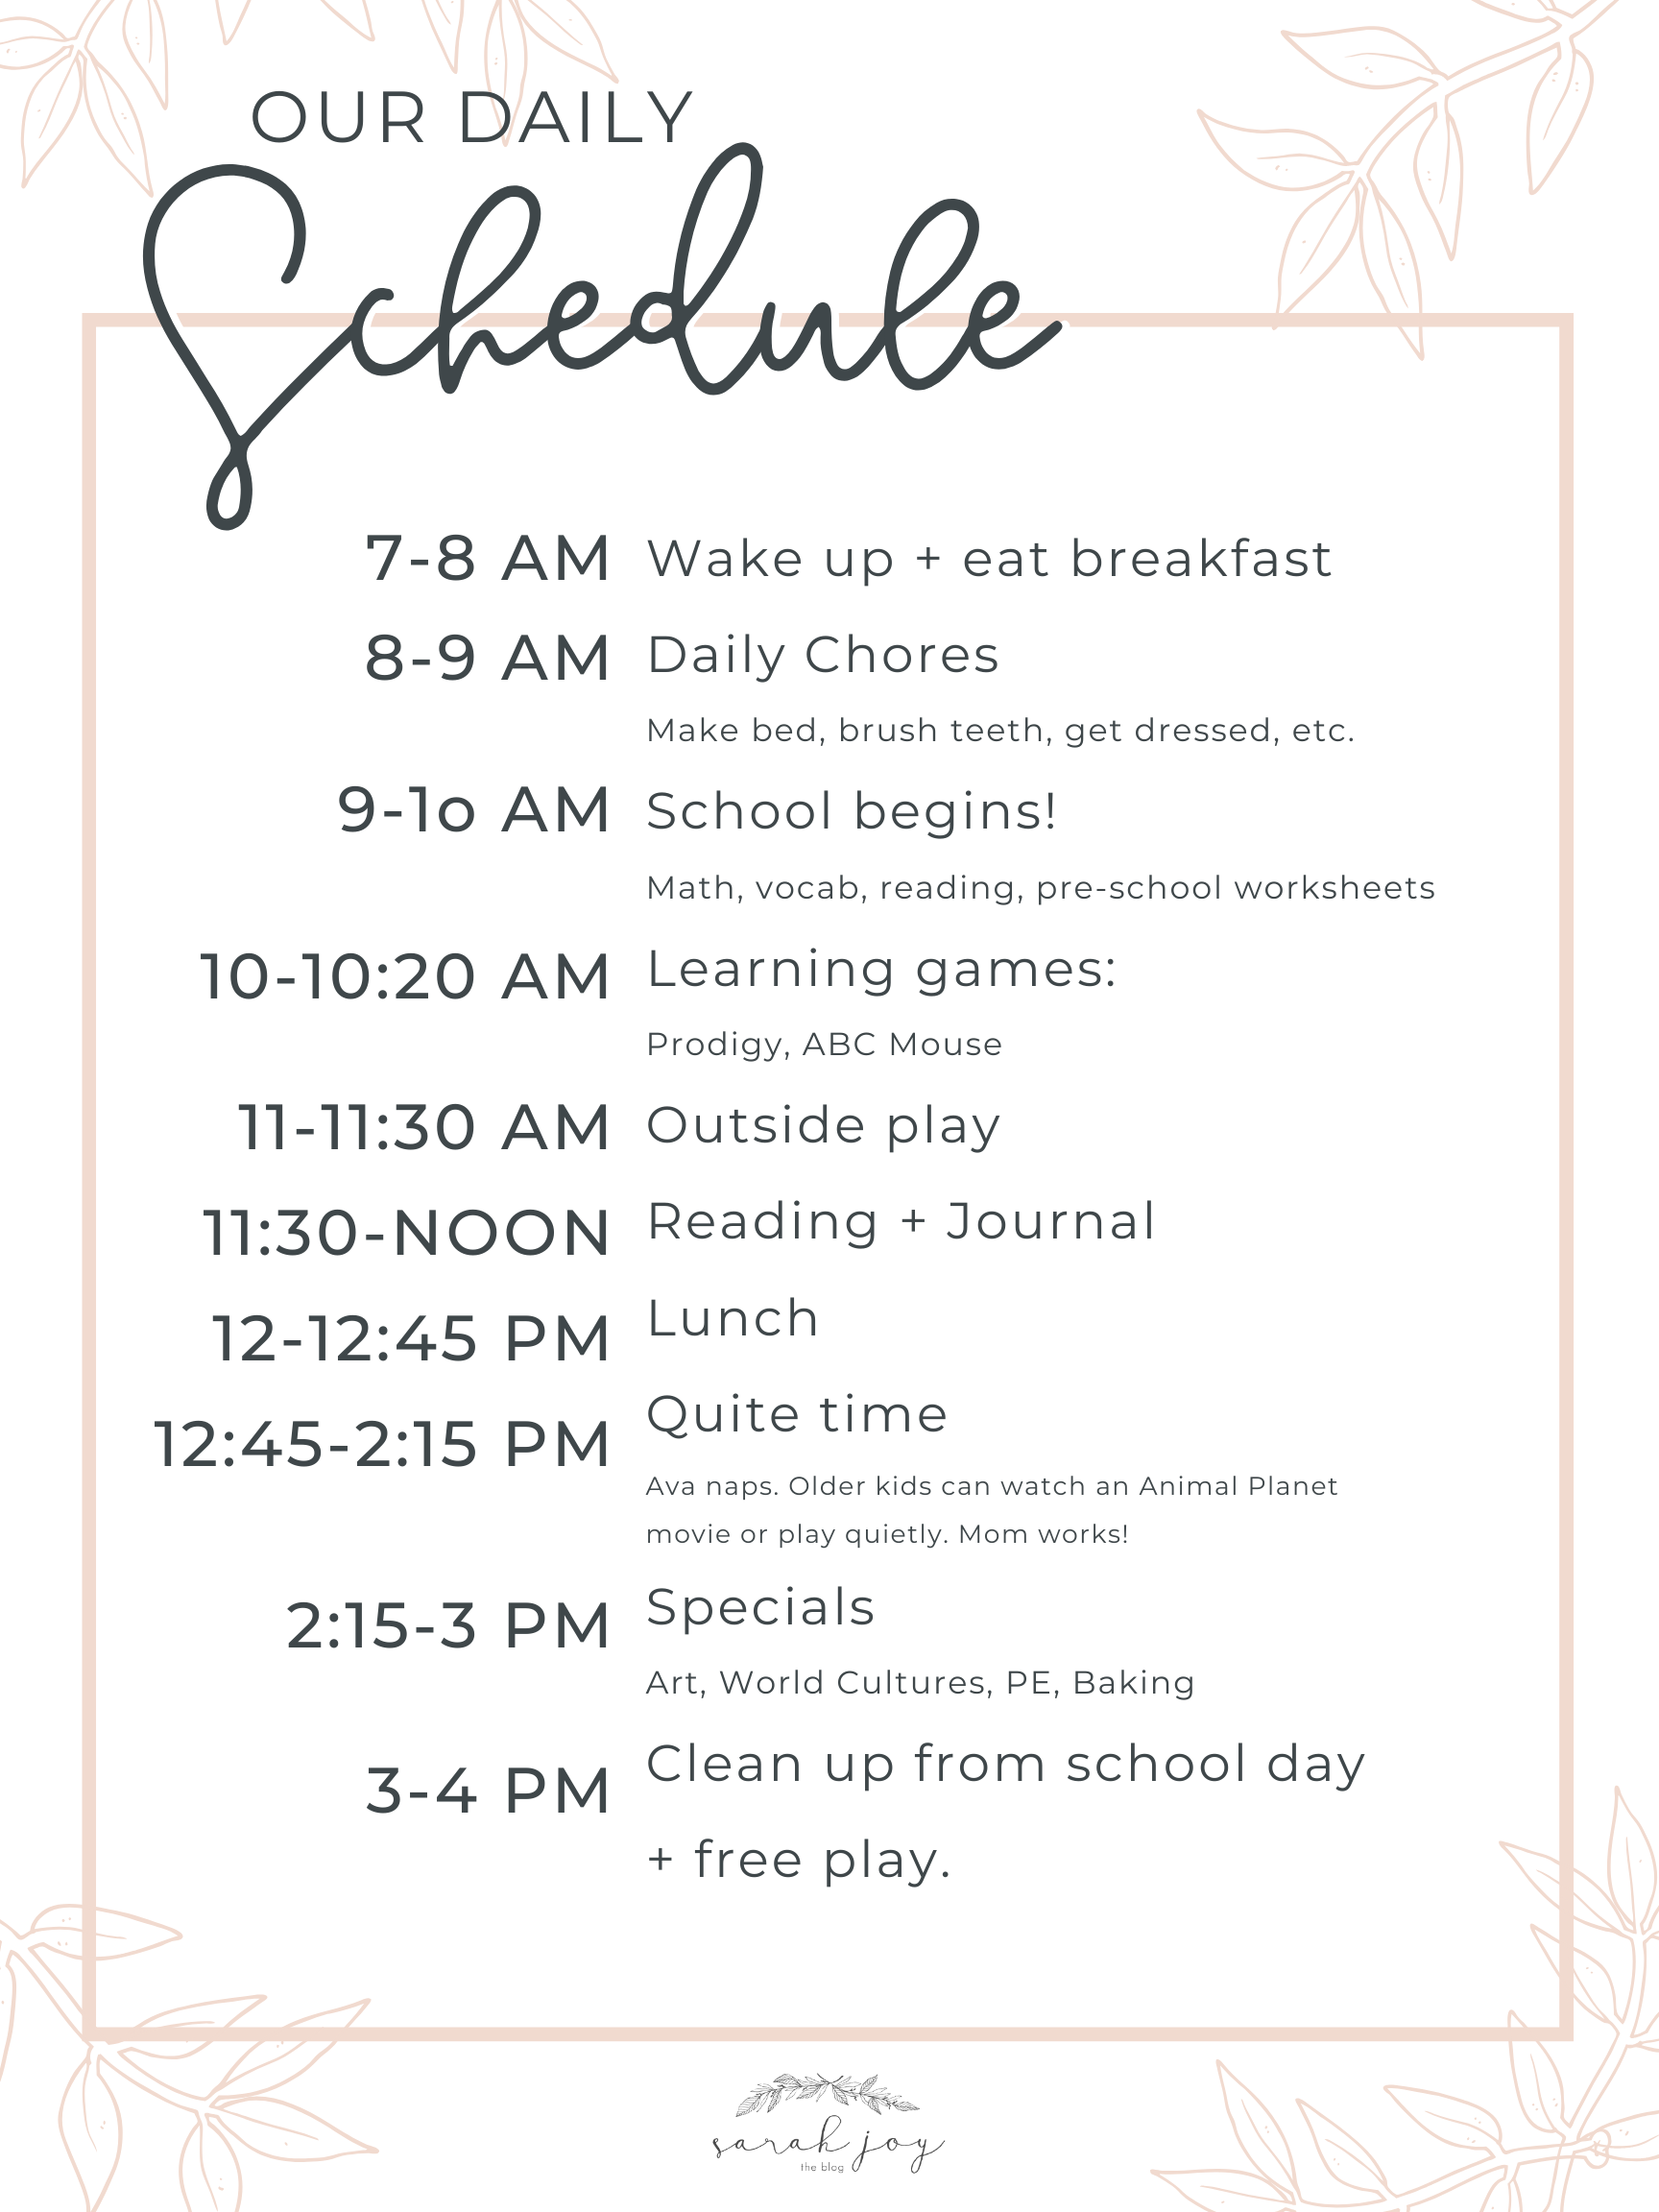 Our New Daily Schedule + Activity Ideas for Kids